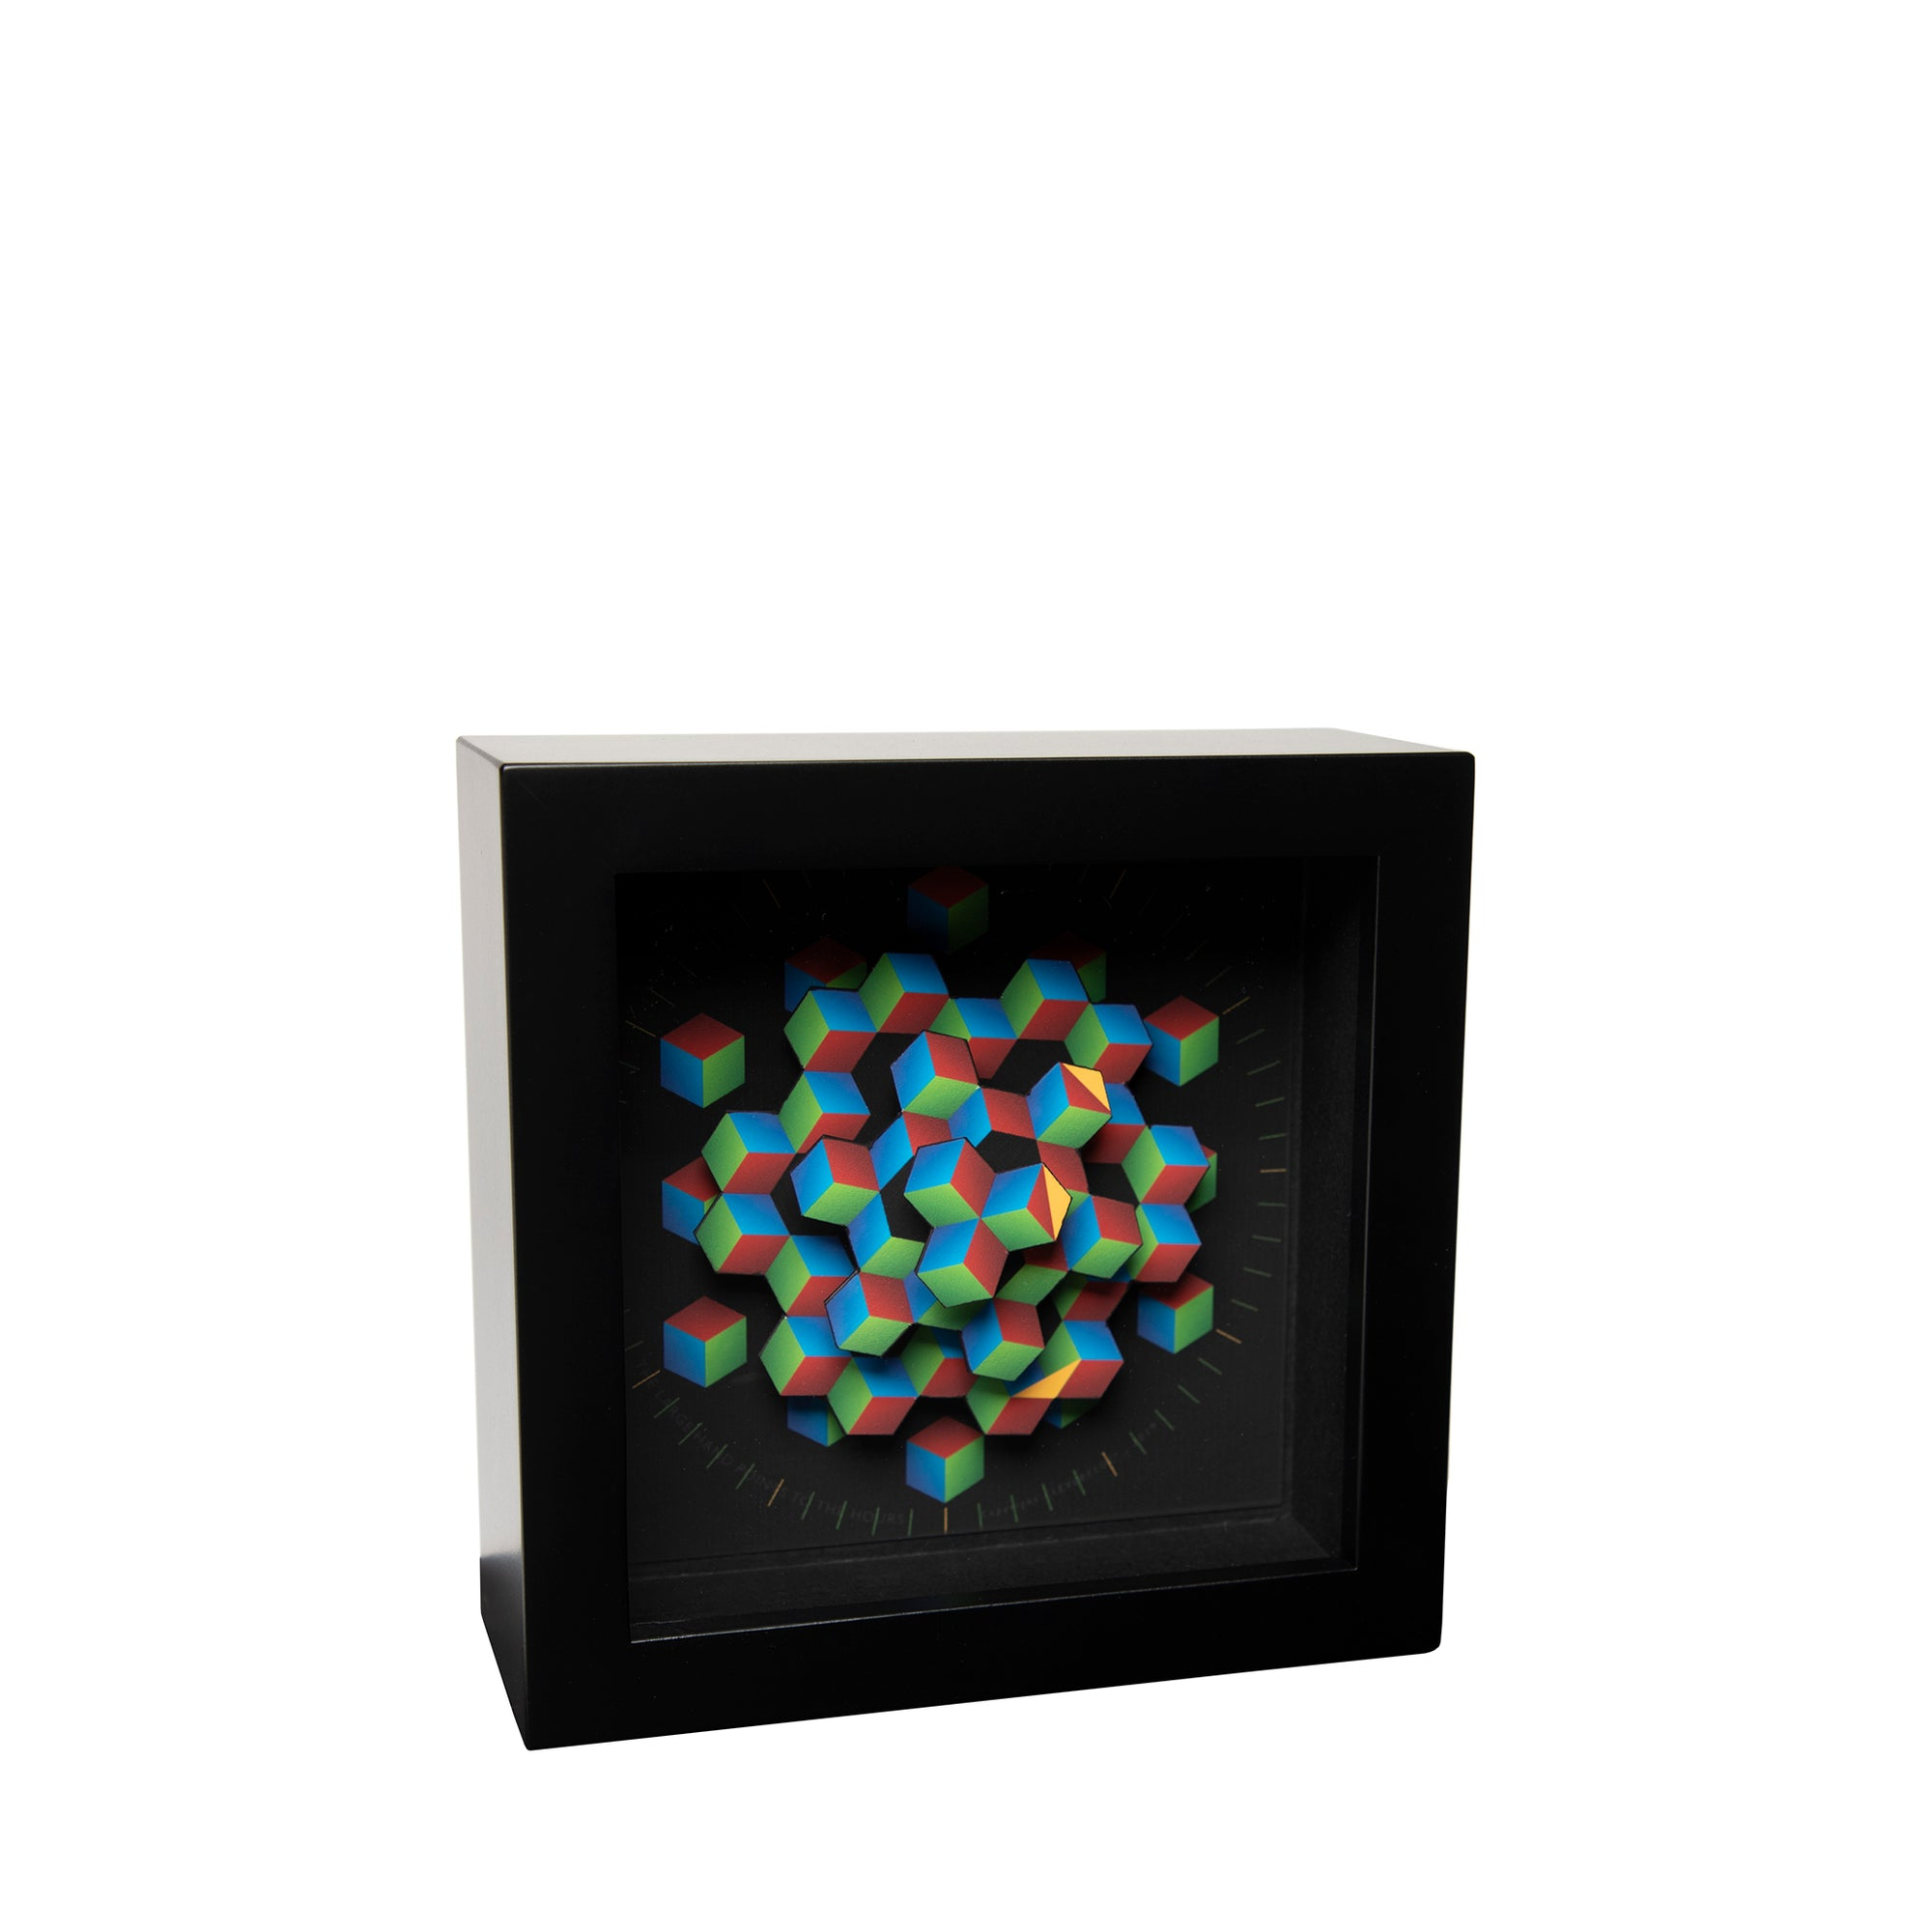 Colorful Hexagon Desk Clock - 5.5"